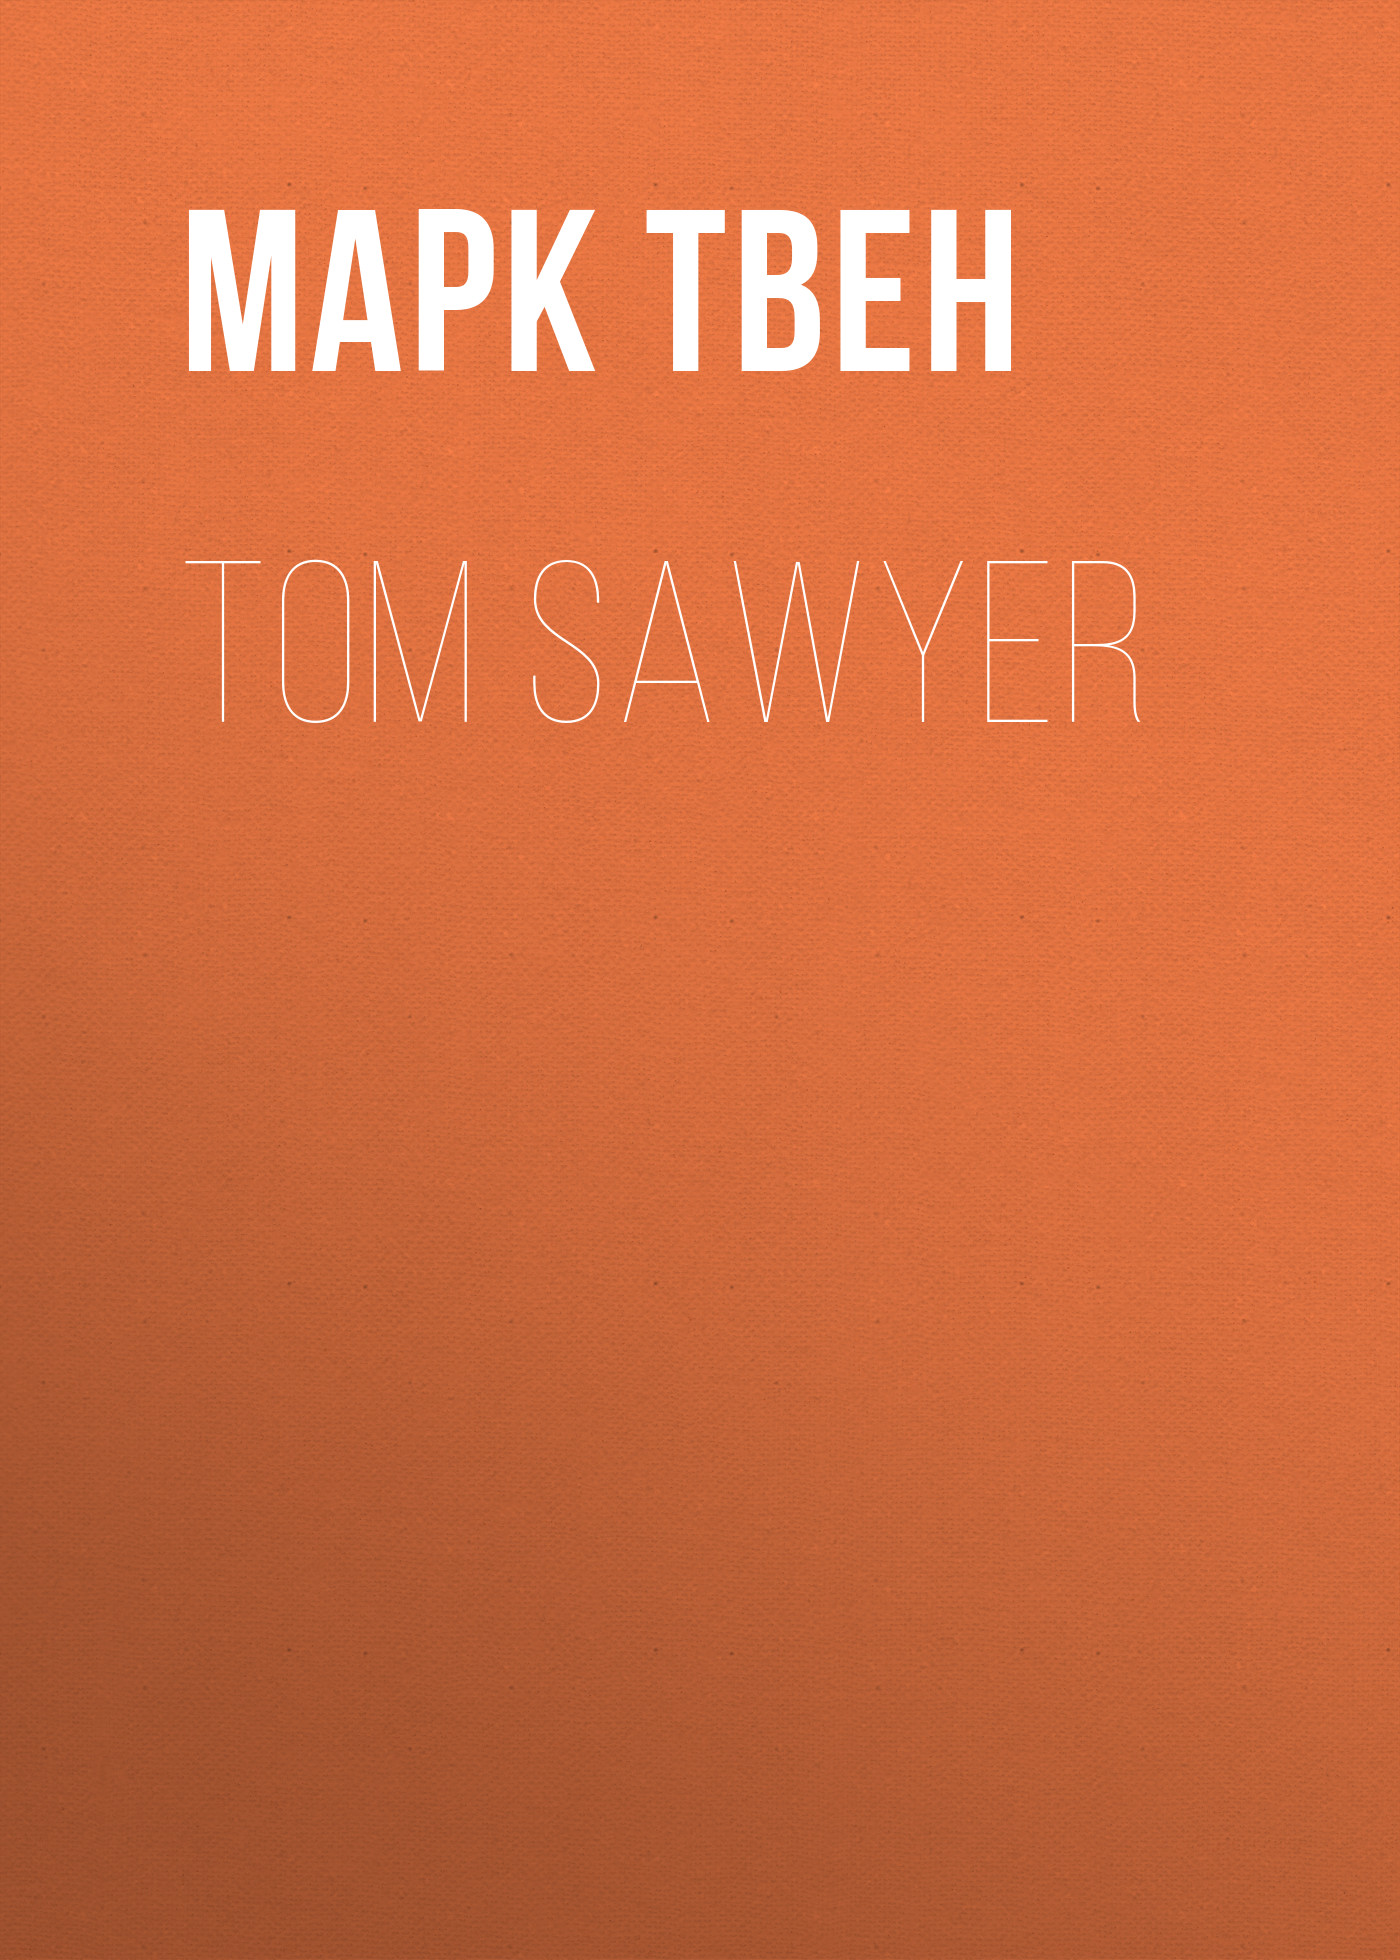 Марк Твен Tom Sawyer марк твен adventures of tom sawyer